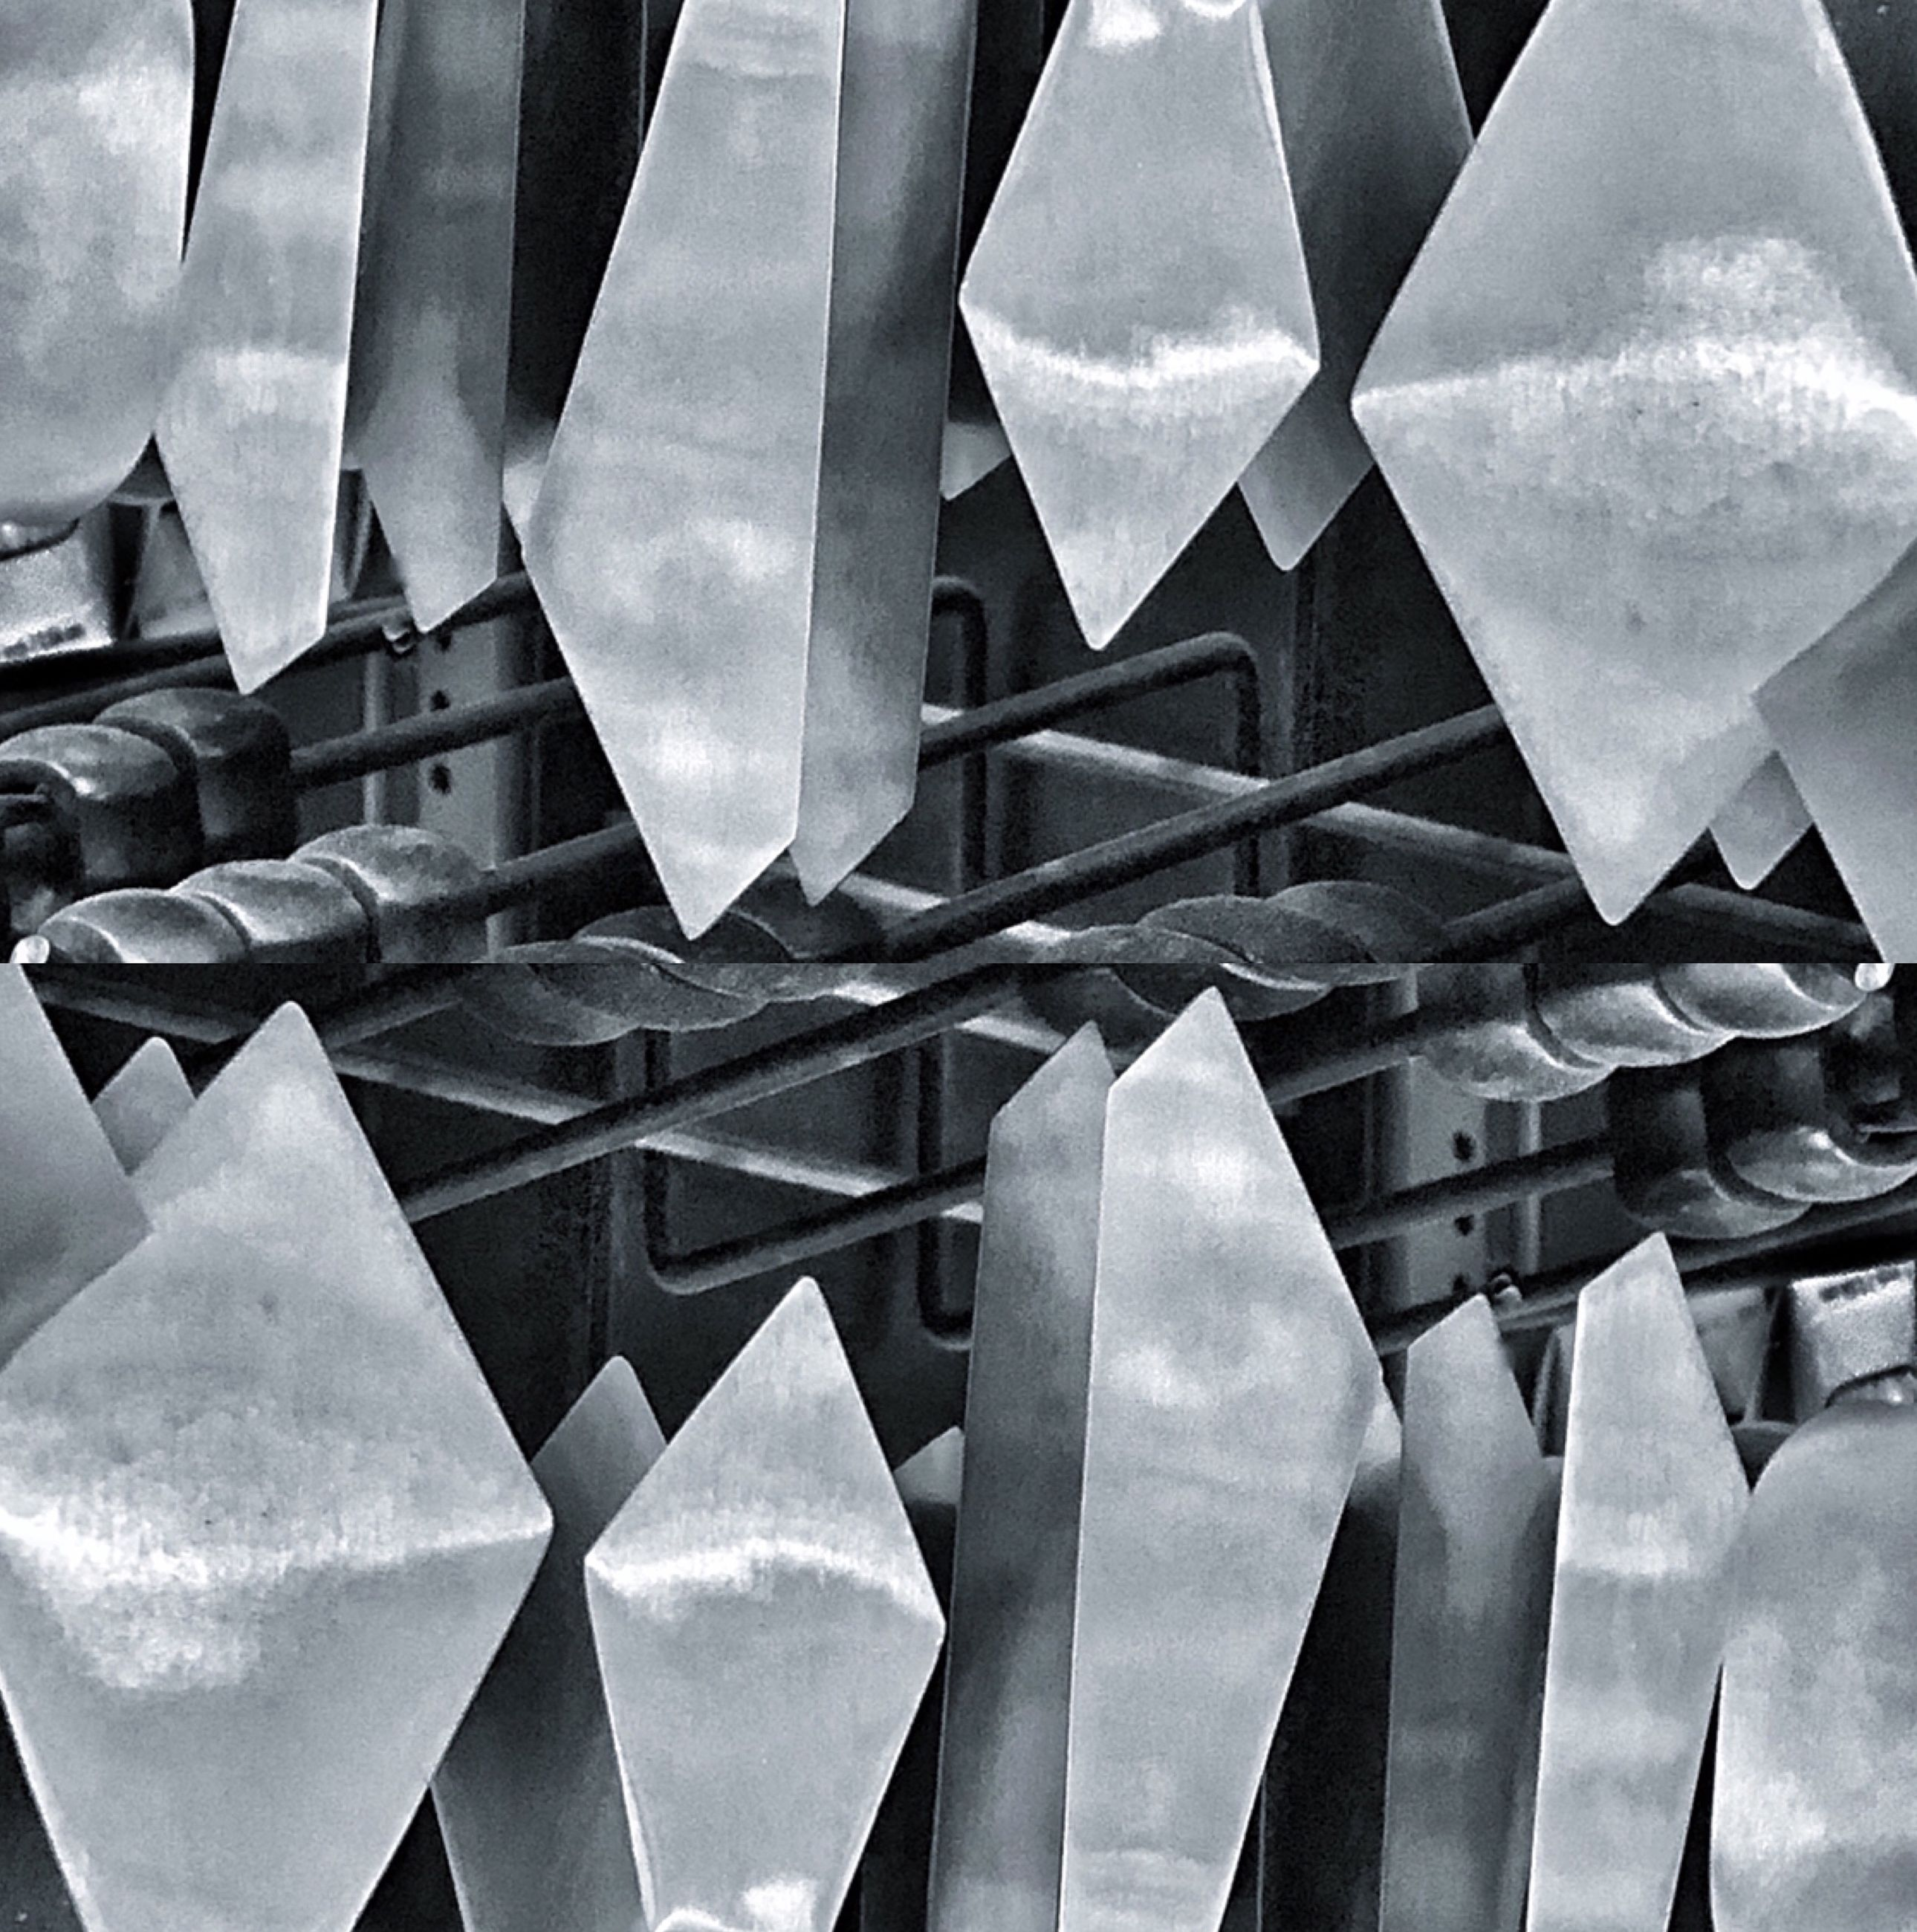 no people, full frame, backgrounds, pattern, low angle view, built structure, shape, design, day, close-up, outdoors, cloud - sky, architecture, repetition, geometric shape, metal, large group of objects, paper, sky, architecture and art